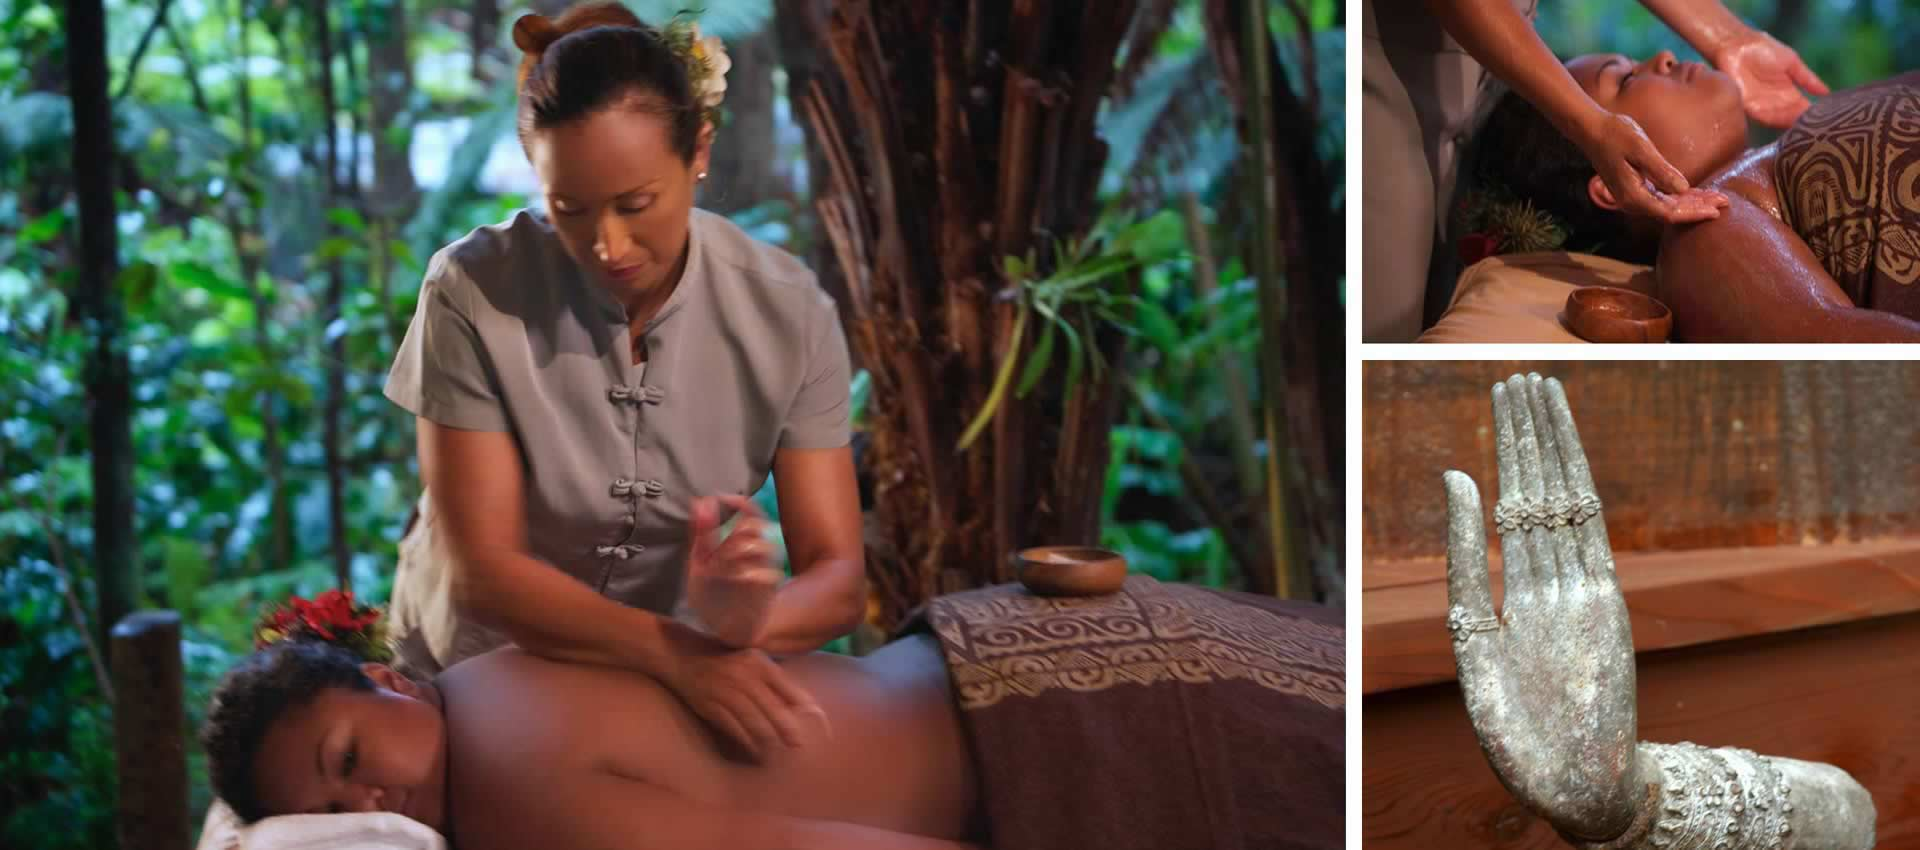 Volcano Rainforest Retreat Guest reciving a relaxing massage